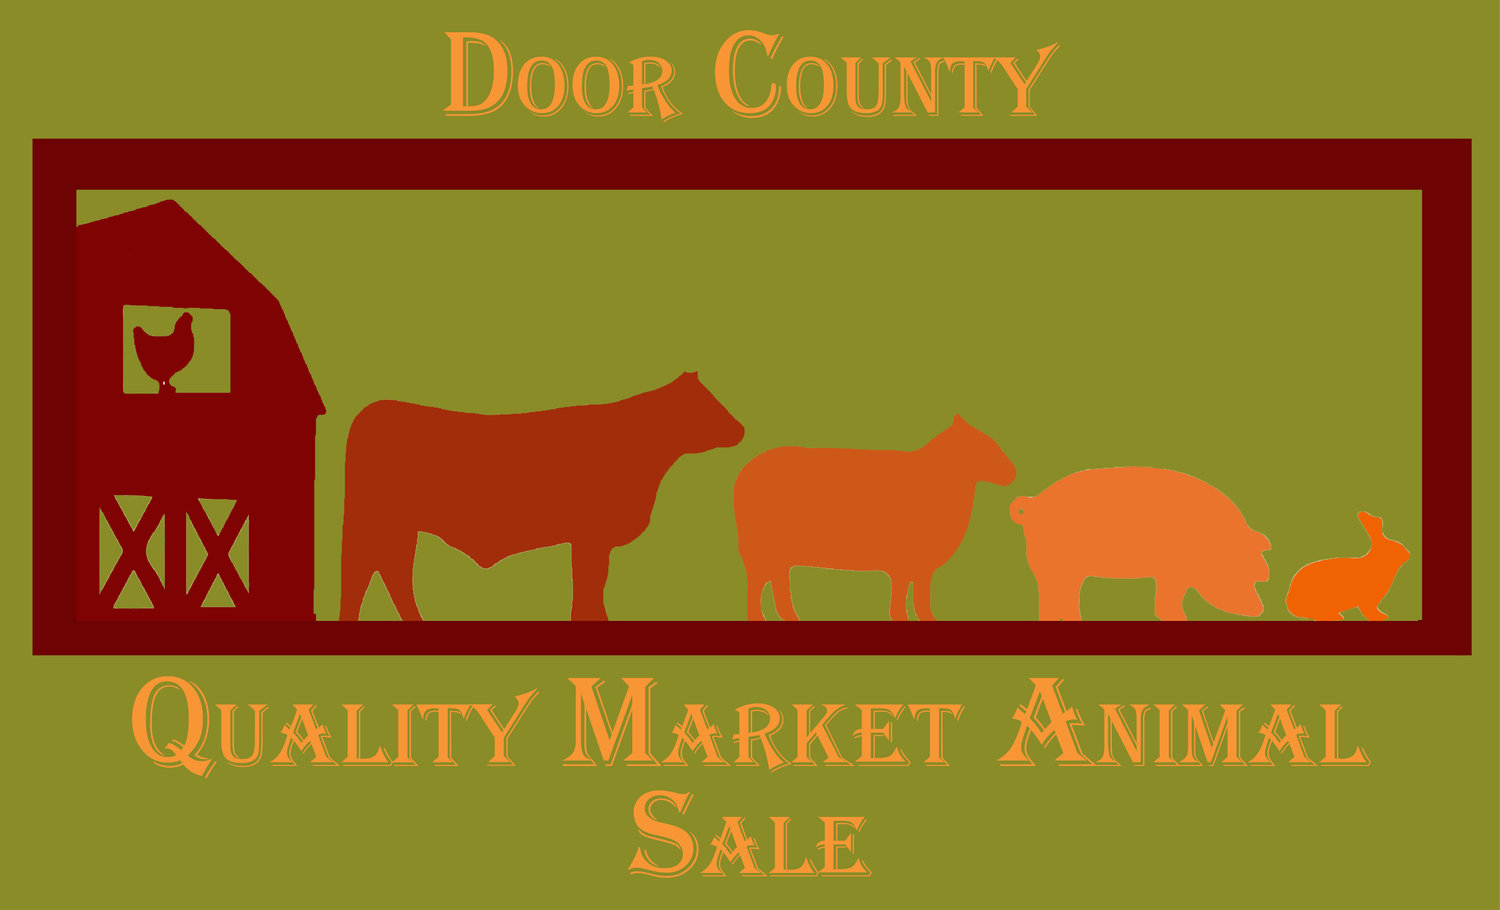 Door County Quality Market Animal Sale